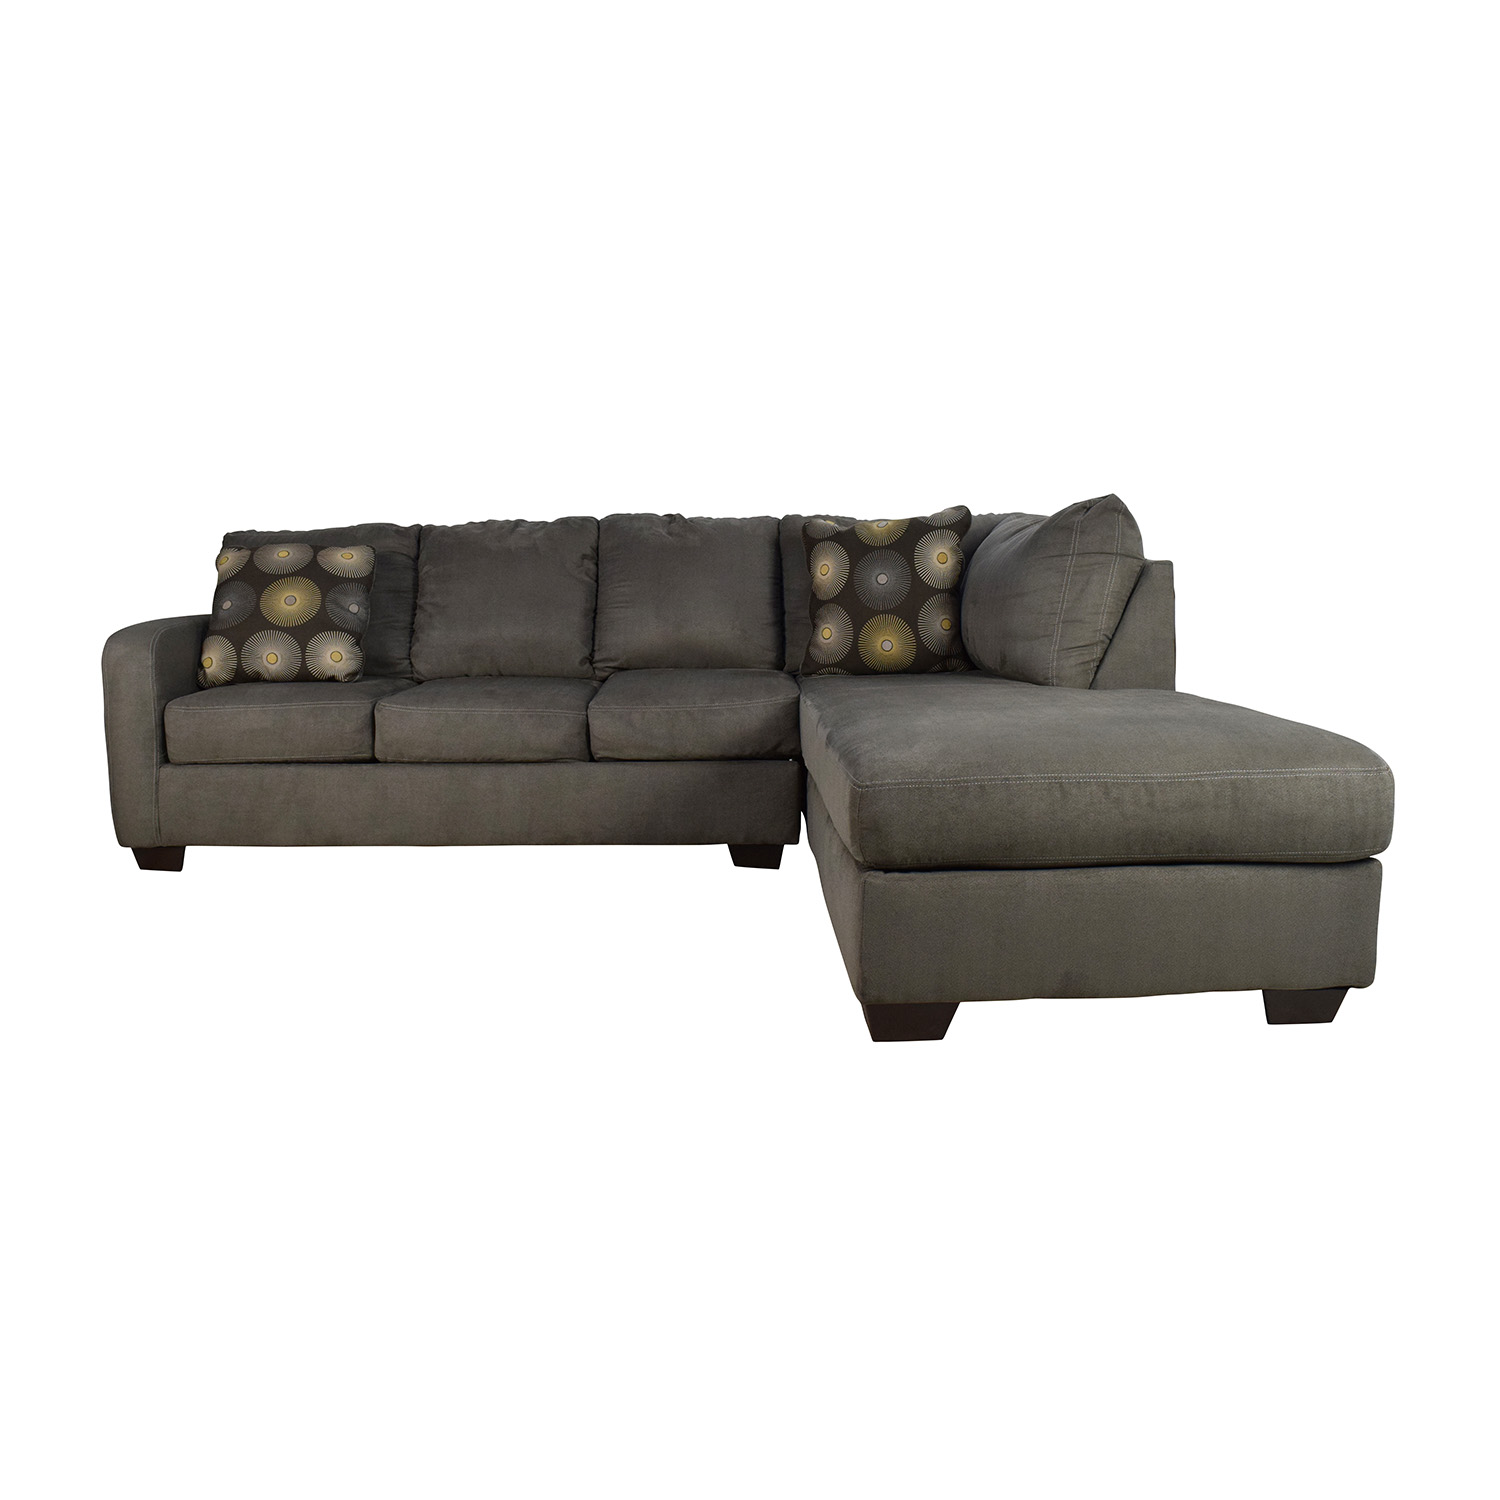 ashley sleeper sectional quality sectionals fabric sofas gray furniture sofa size of levels full